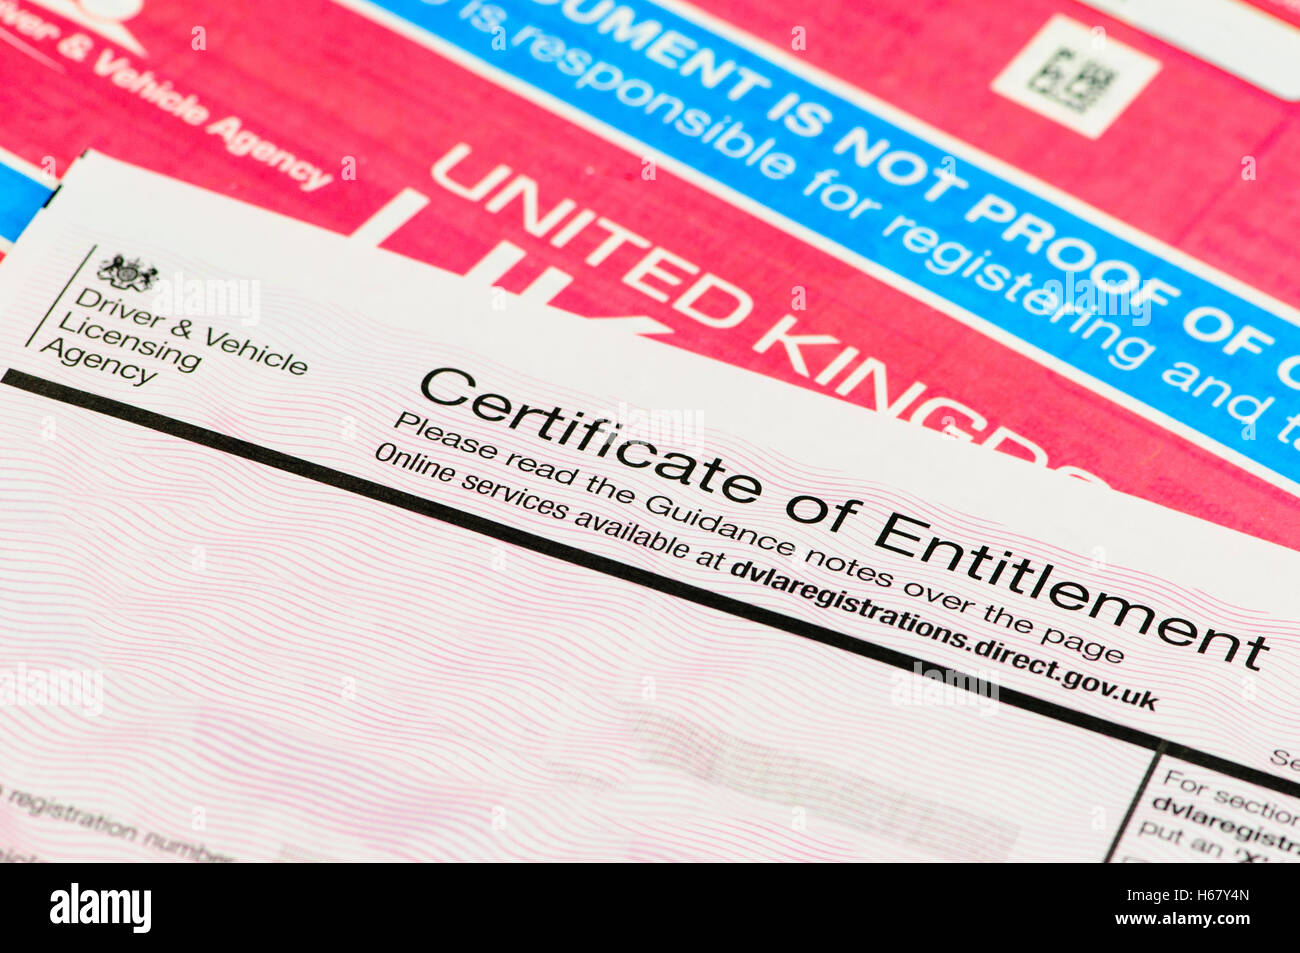 Certificate of Entitlement for personalised number plates from DVLA with V5C registration certificate. Stock Photo